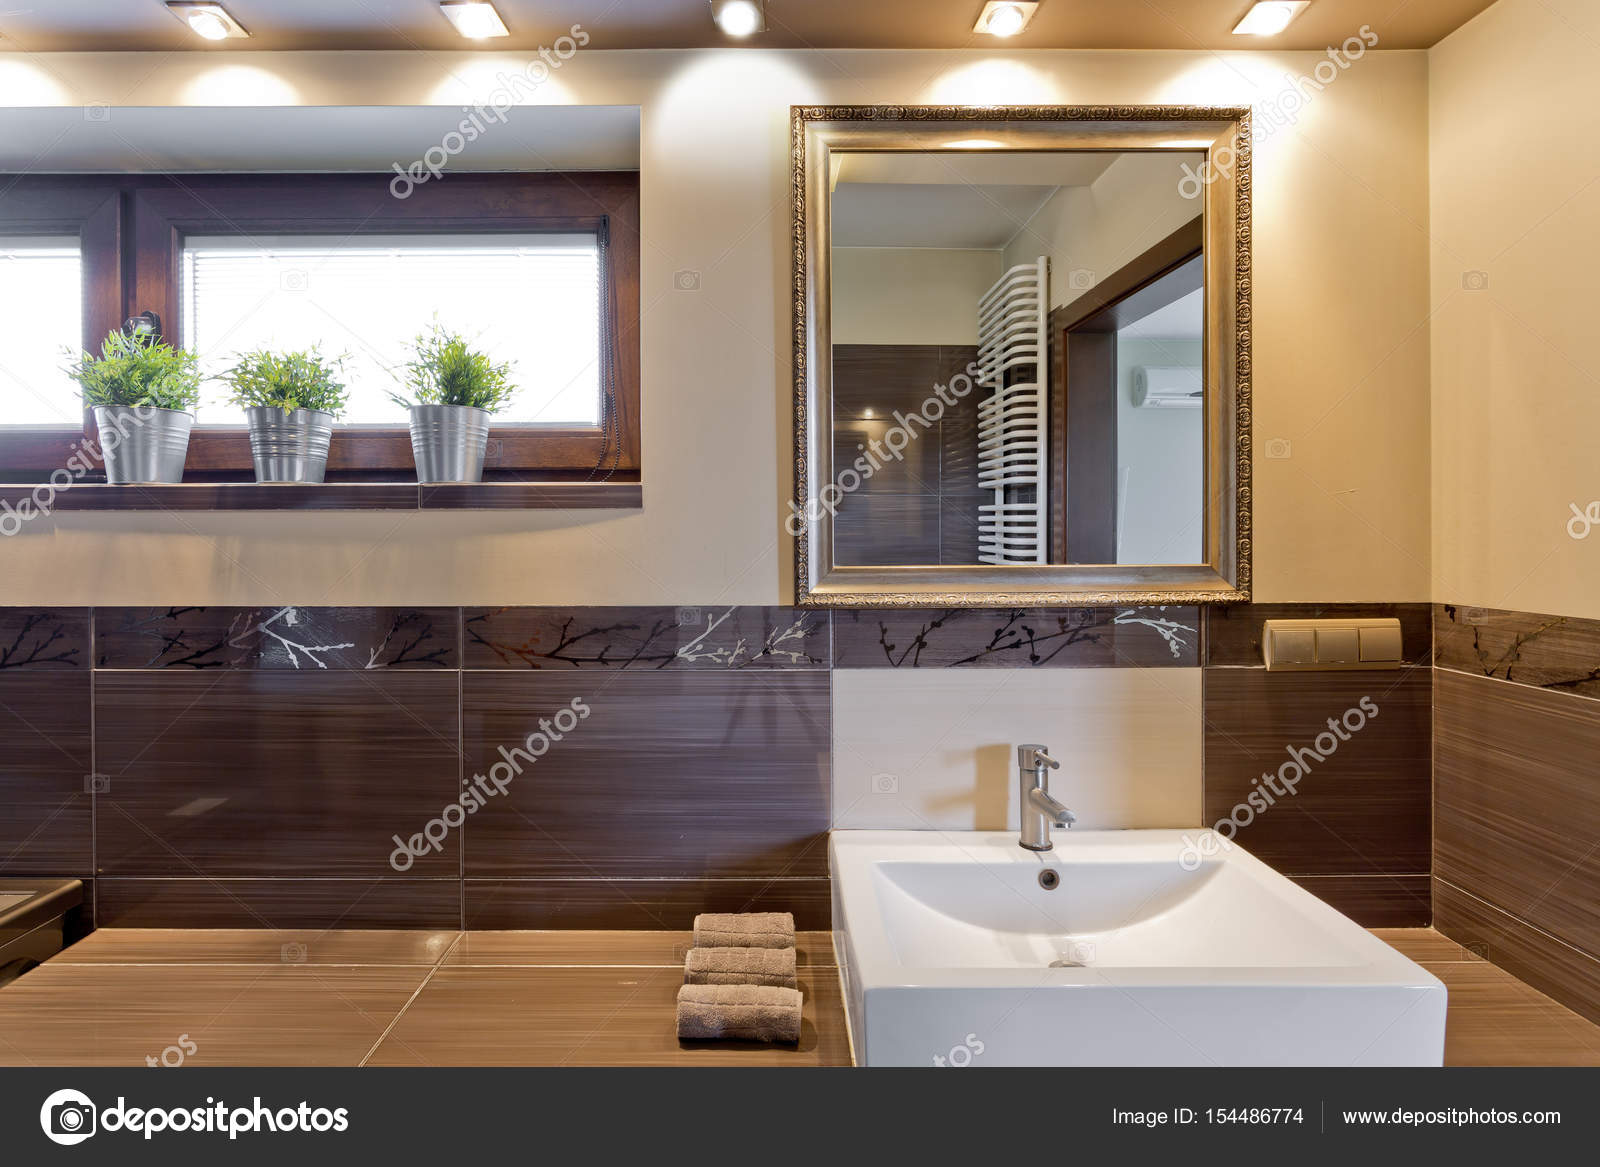 Brown Bathroom With Big Tiles And Old Fashioned Mirror Above Wide Sink Photo By Photographee Eu